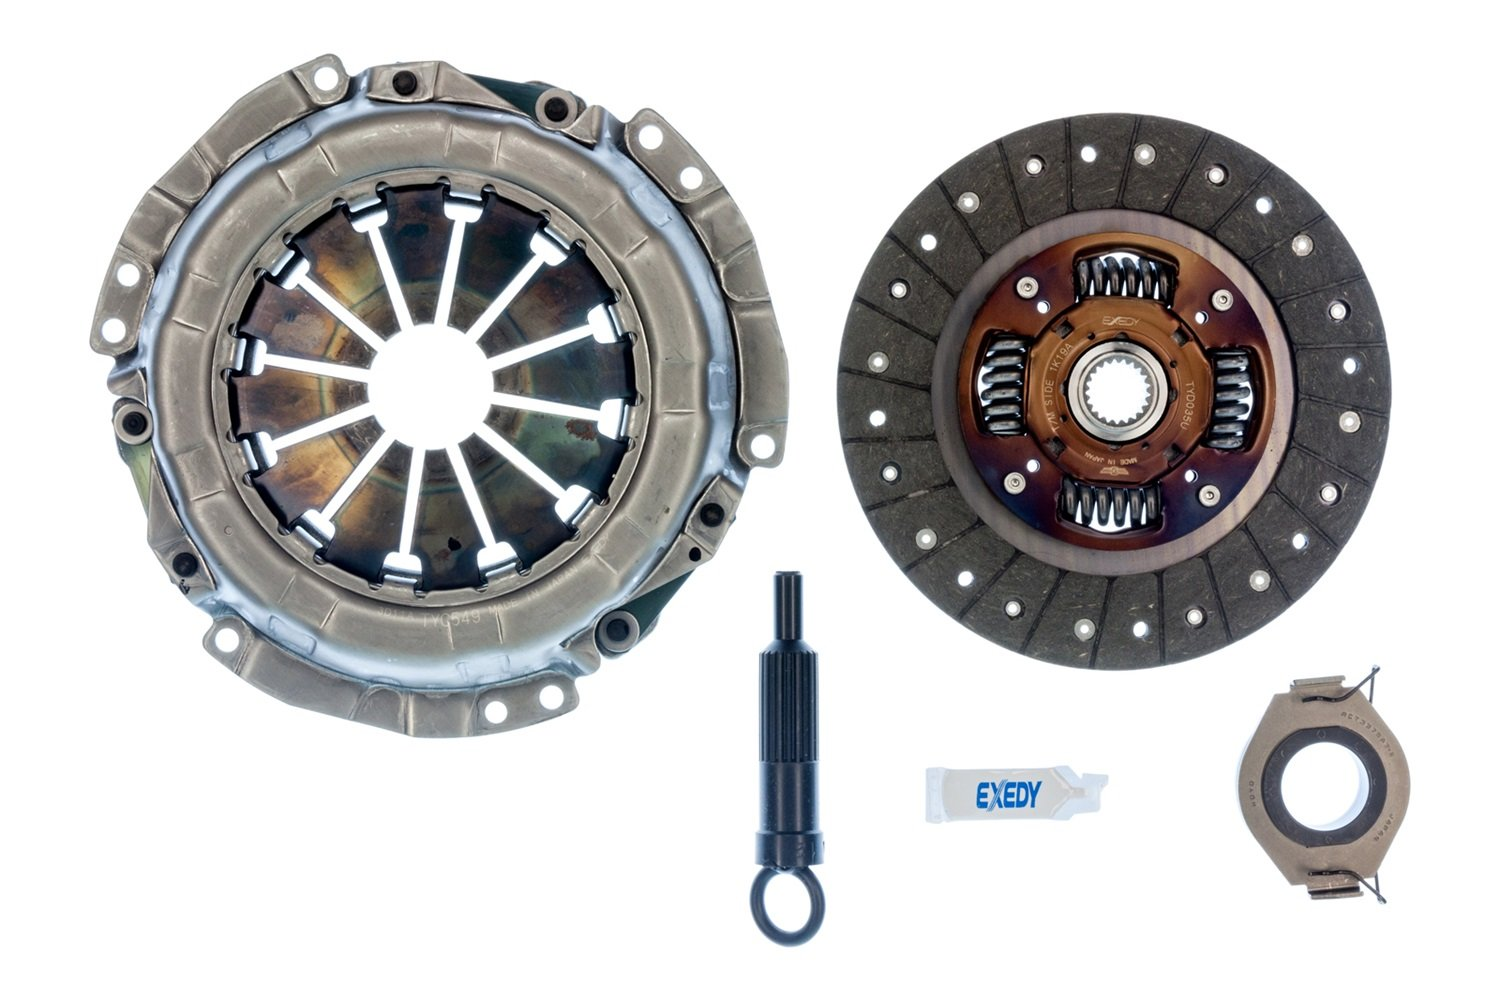 EXEDY KTY15 OEM Replacement Clutch Kit Exedy Racing Clutch